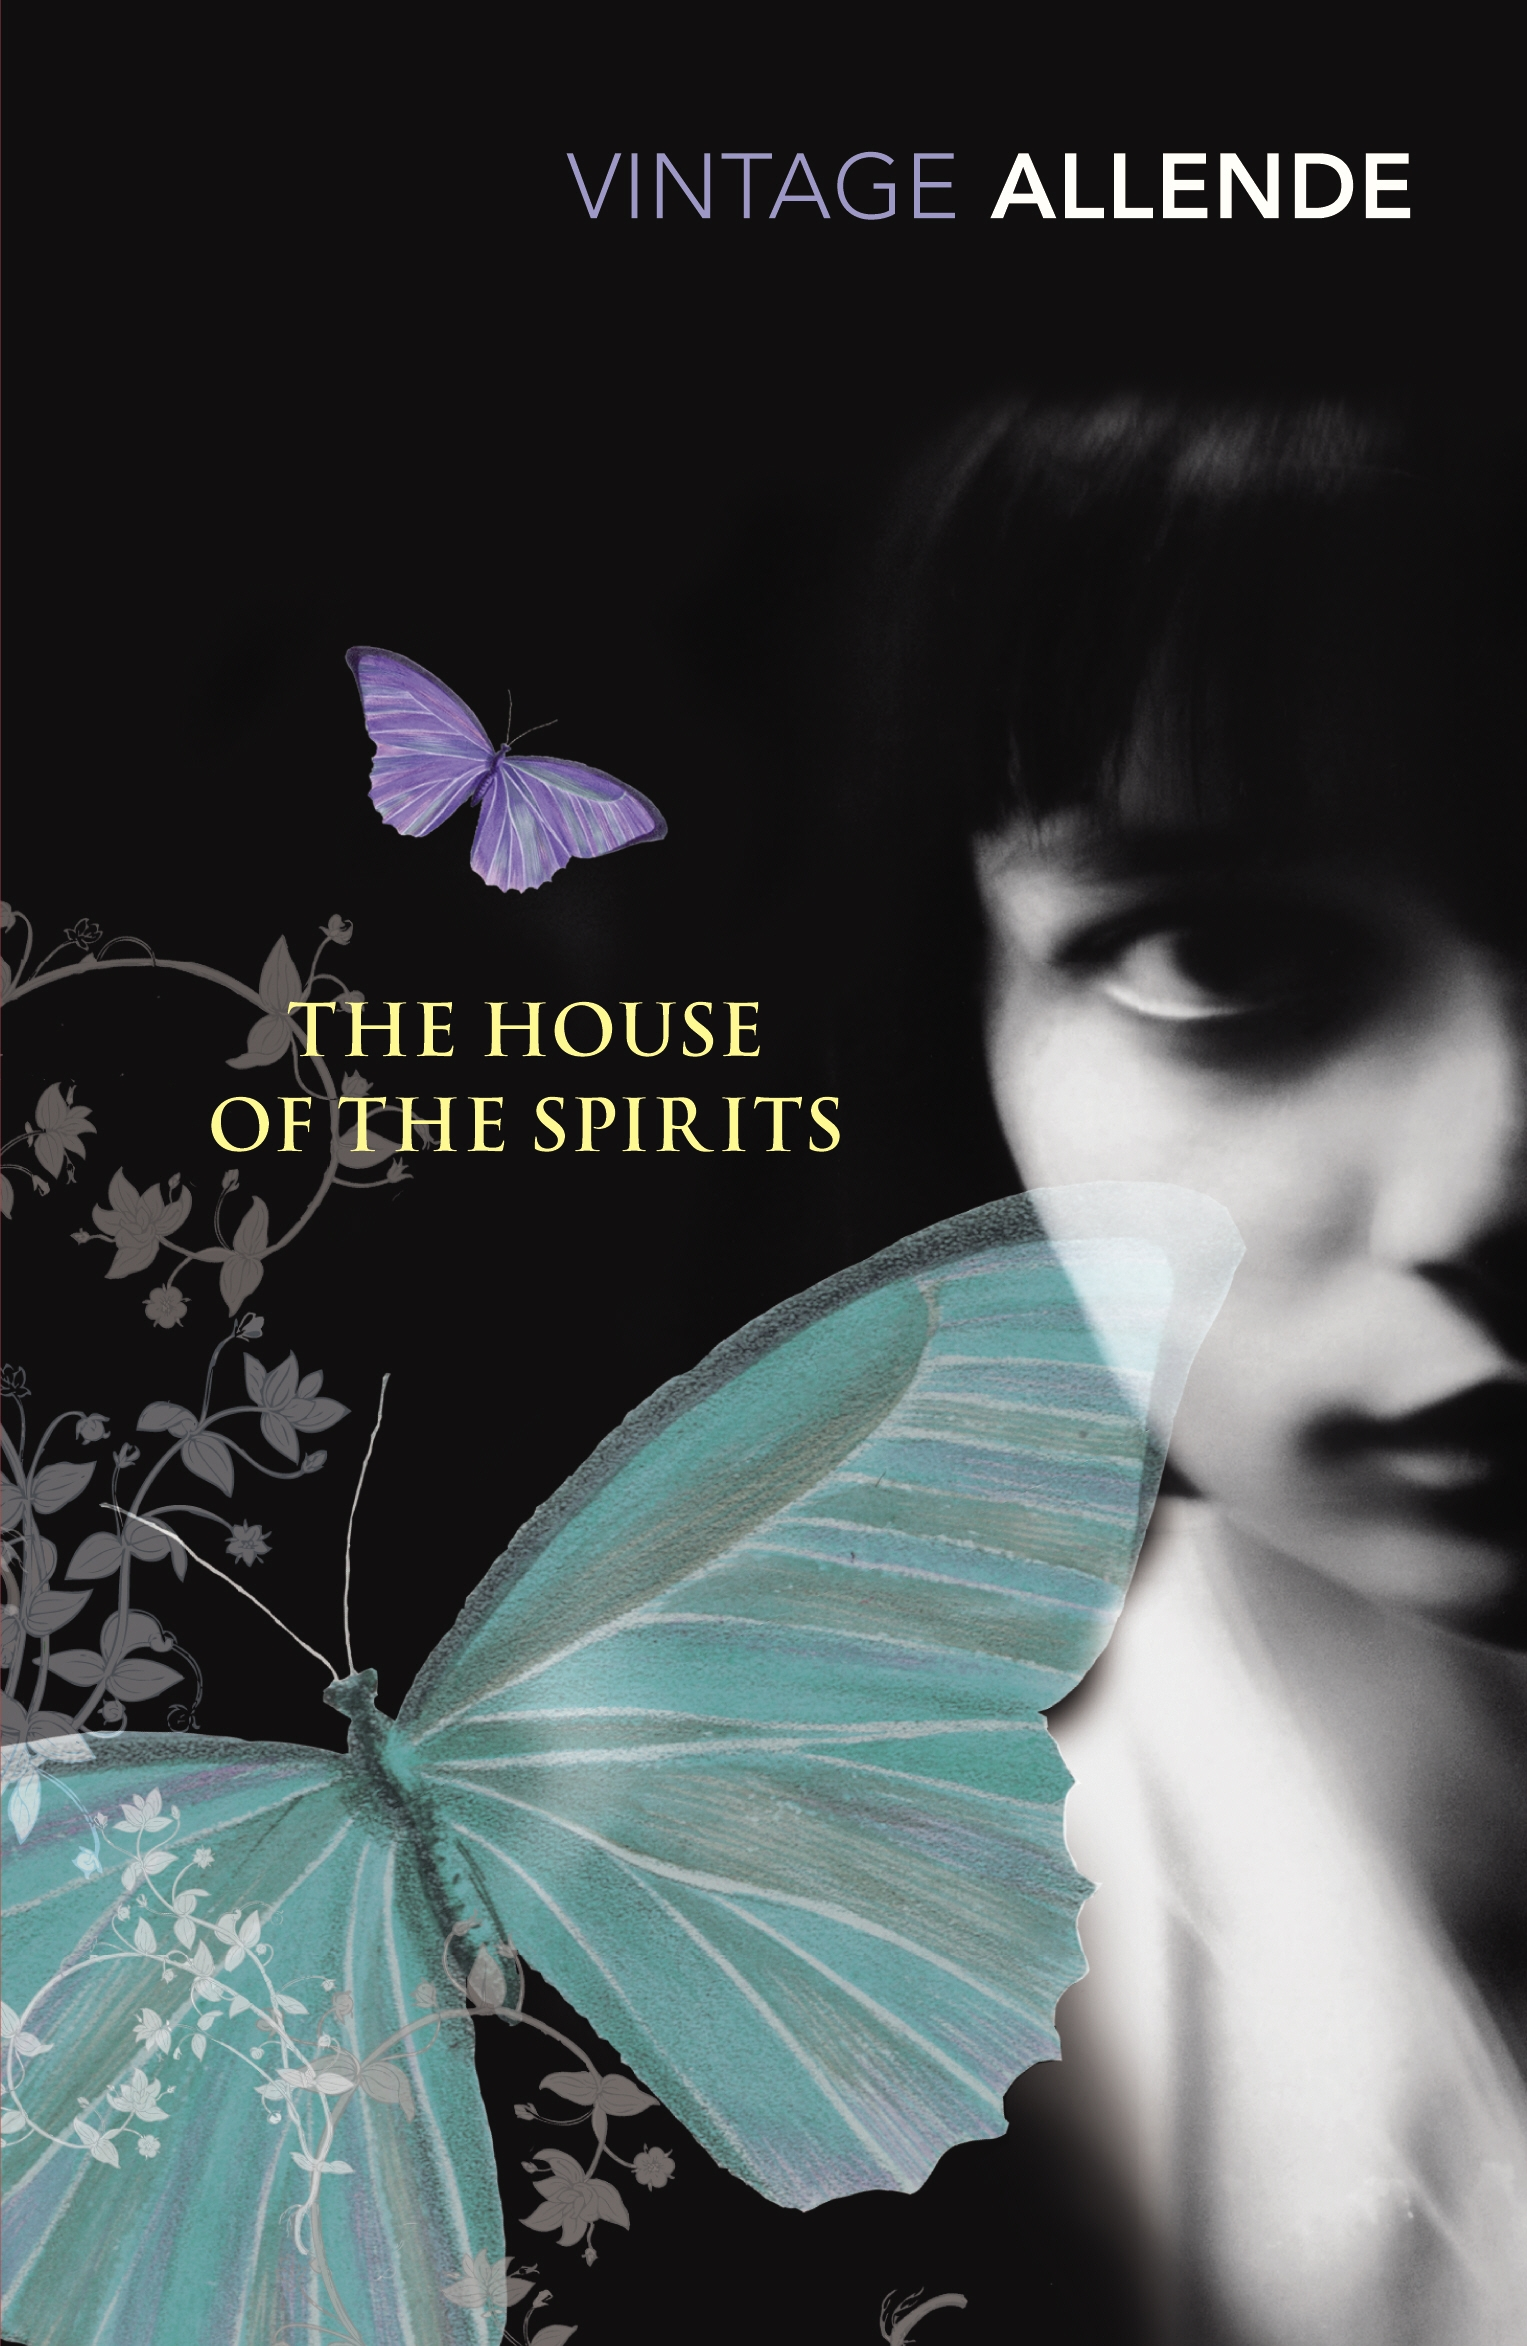 The House of the Spirits by Isabel Allende - Penguin Books Australia